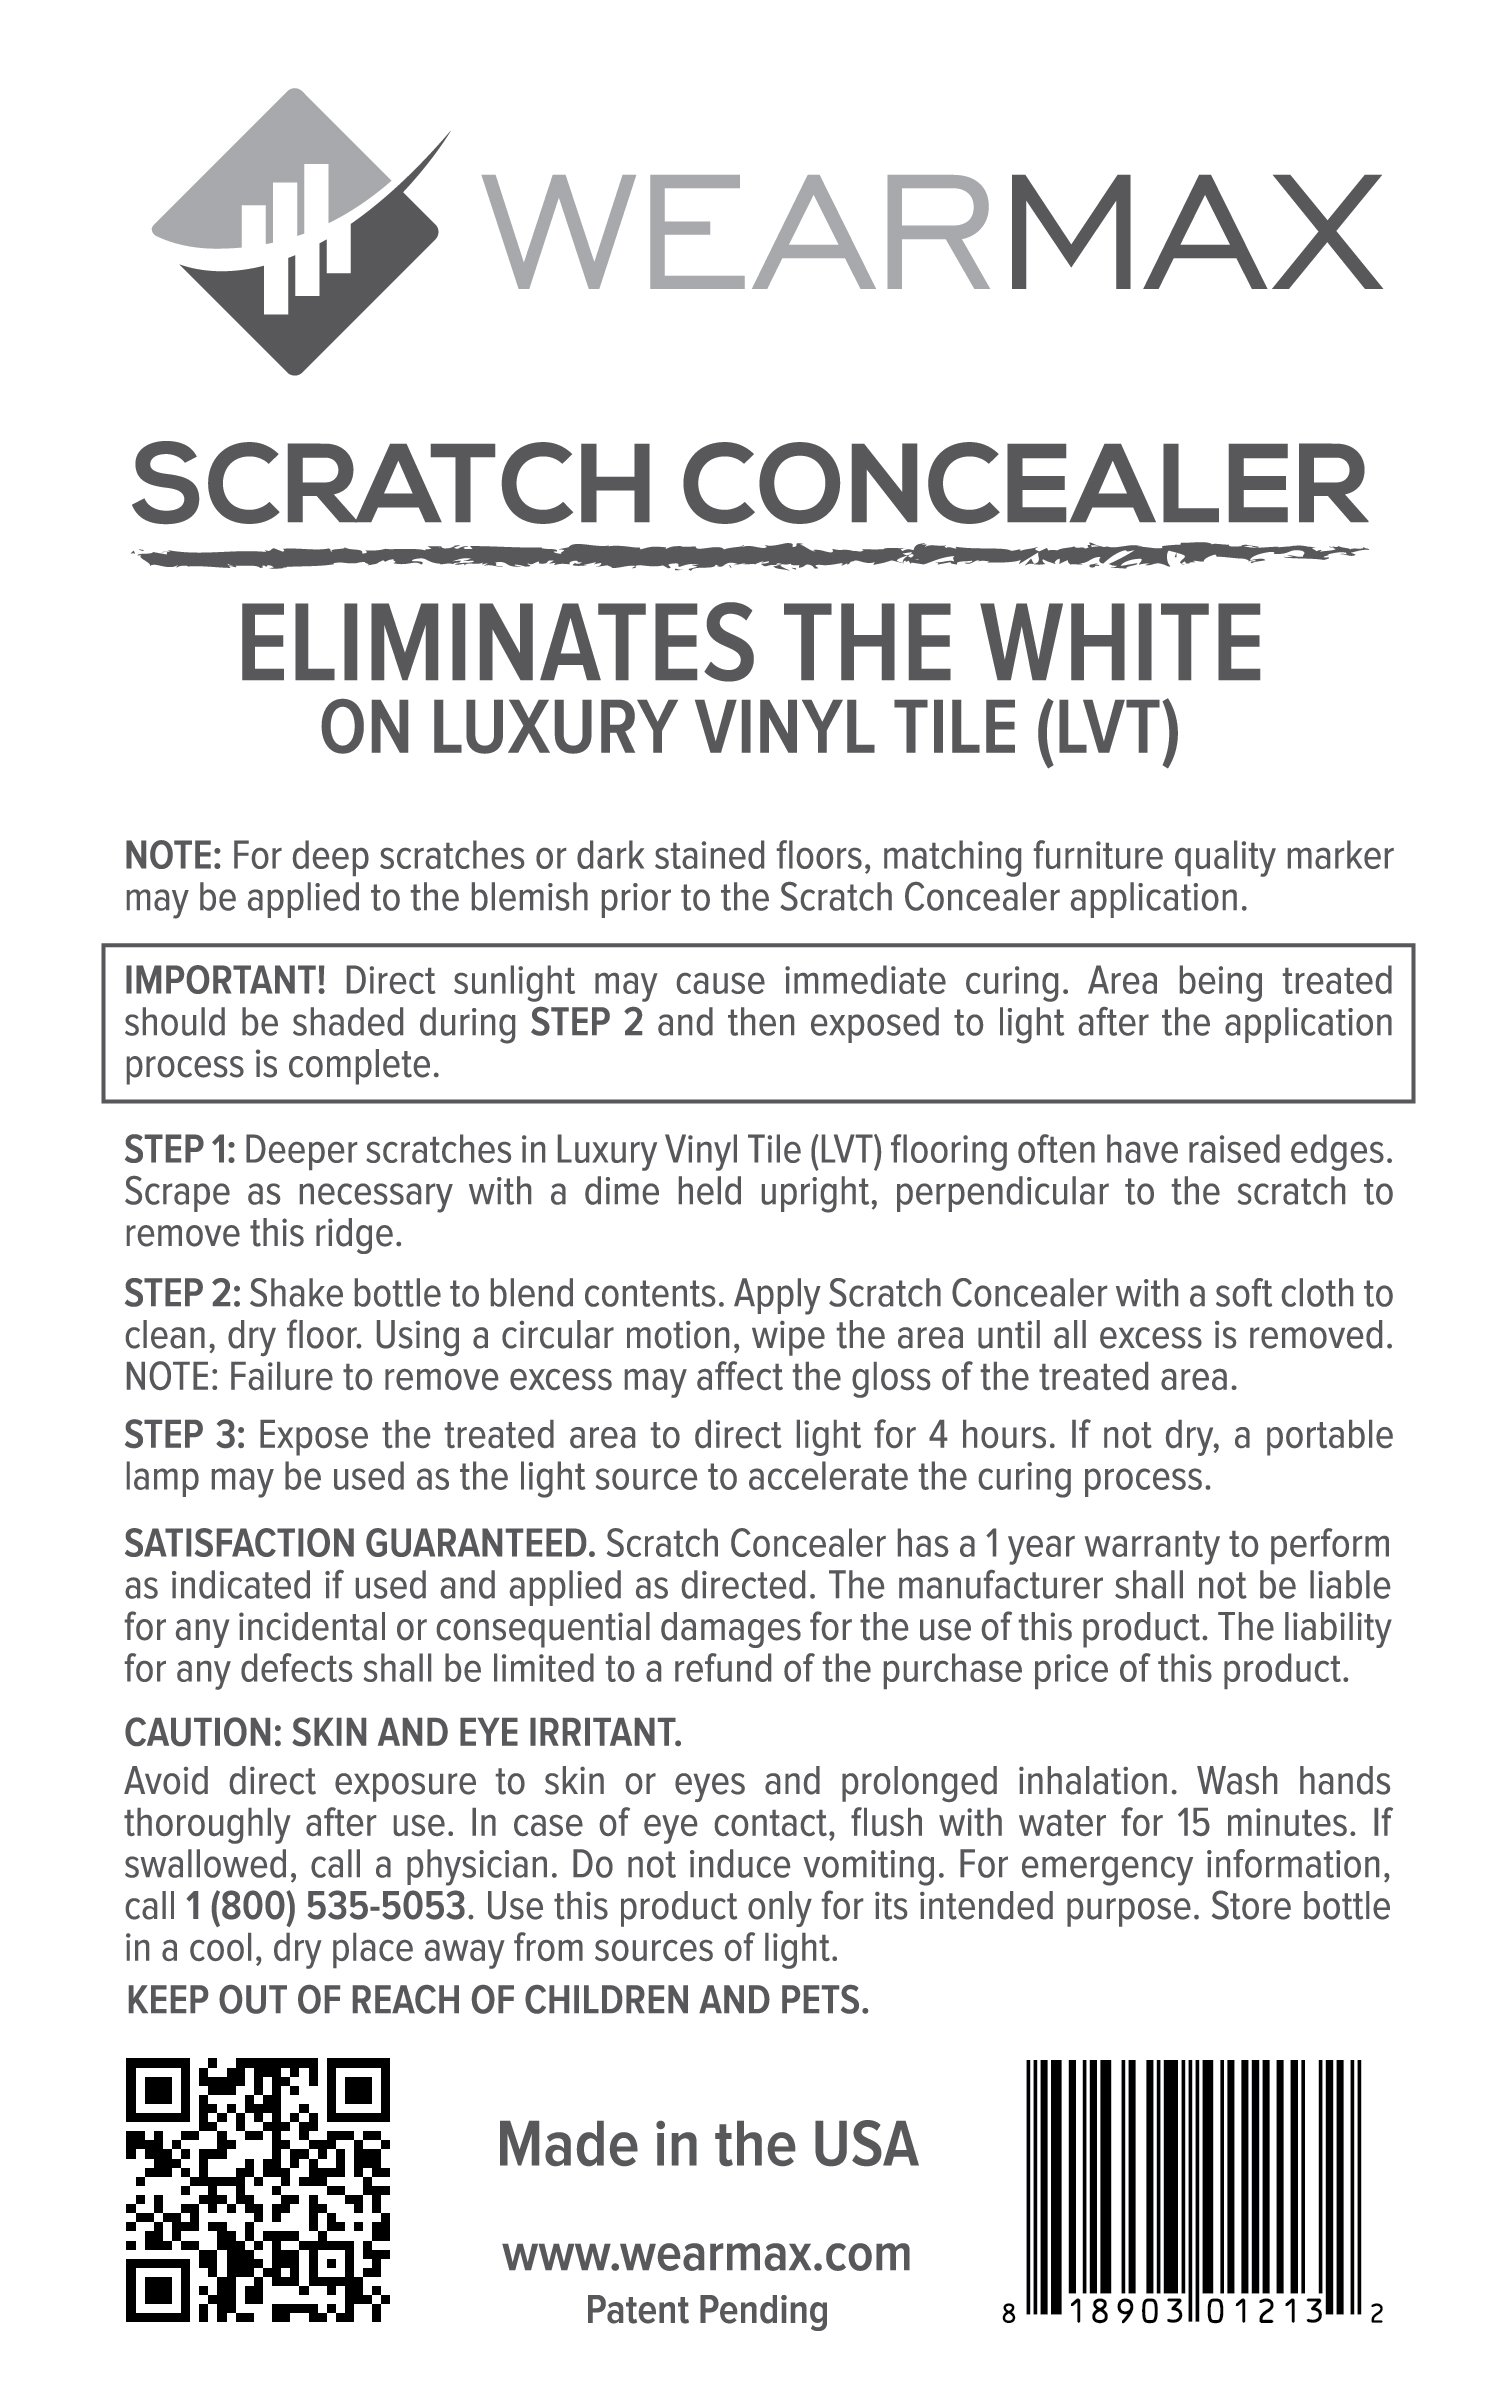 WearMax Scratch Concealer for Luxury Vinyl Tile (LVT) Flooring - Scratch Repair Touch-up & Remover - Eliminate White Lines from LVT Floors by WearMax